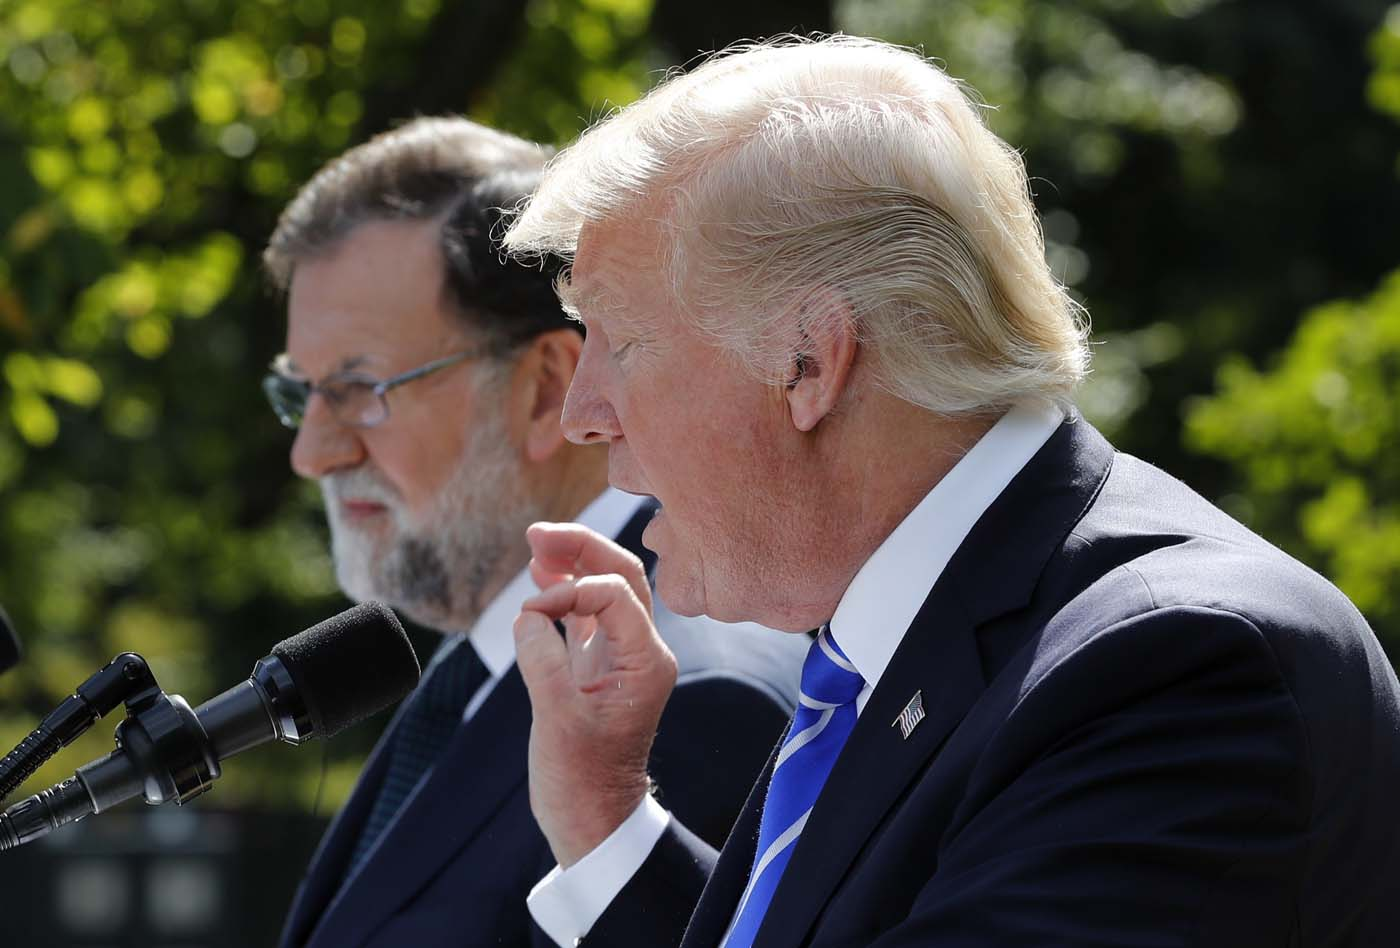 Spanish Prime Minister Mariano Rajoy and U.S.President Donald Trump hold a joint news conference in the Rose Garden at the White House in Washington, U.S., September 26, 2017. REUTERS/Jonathan Ernst